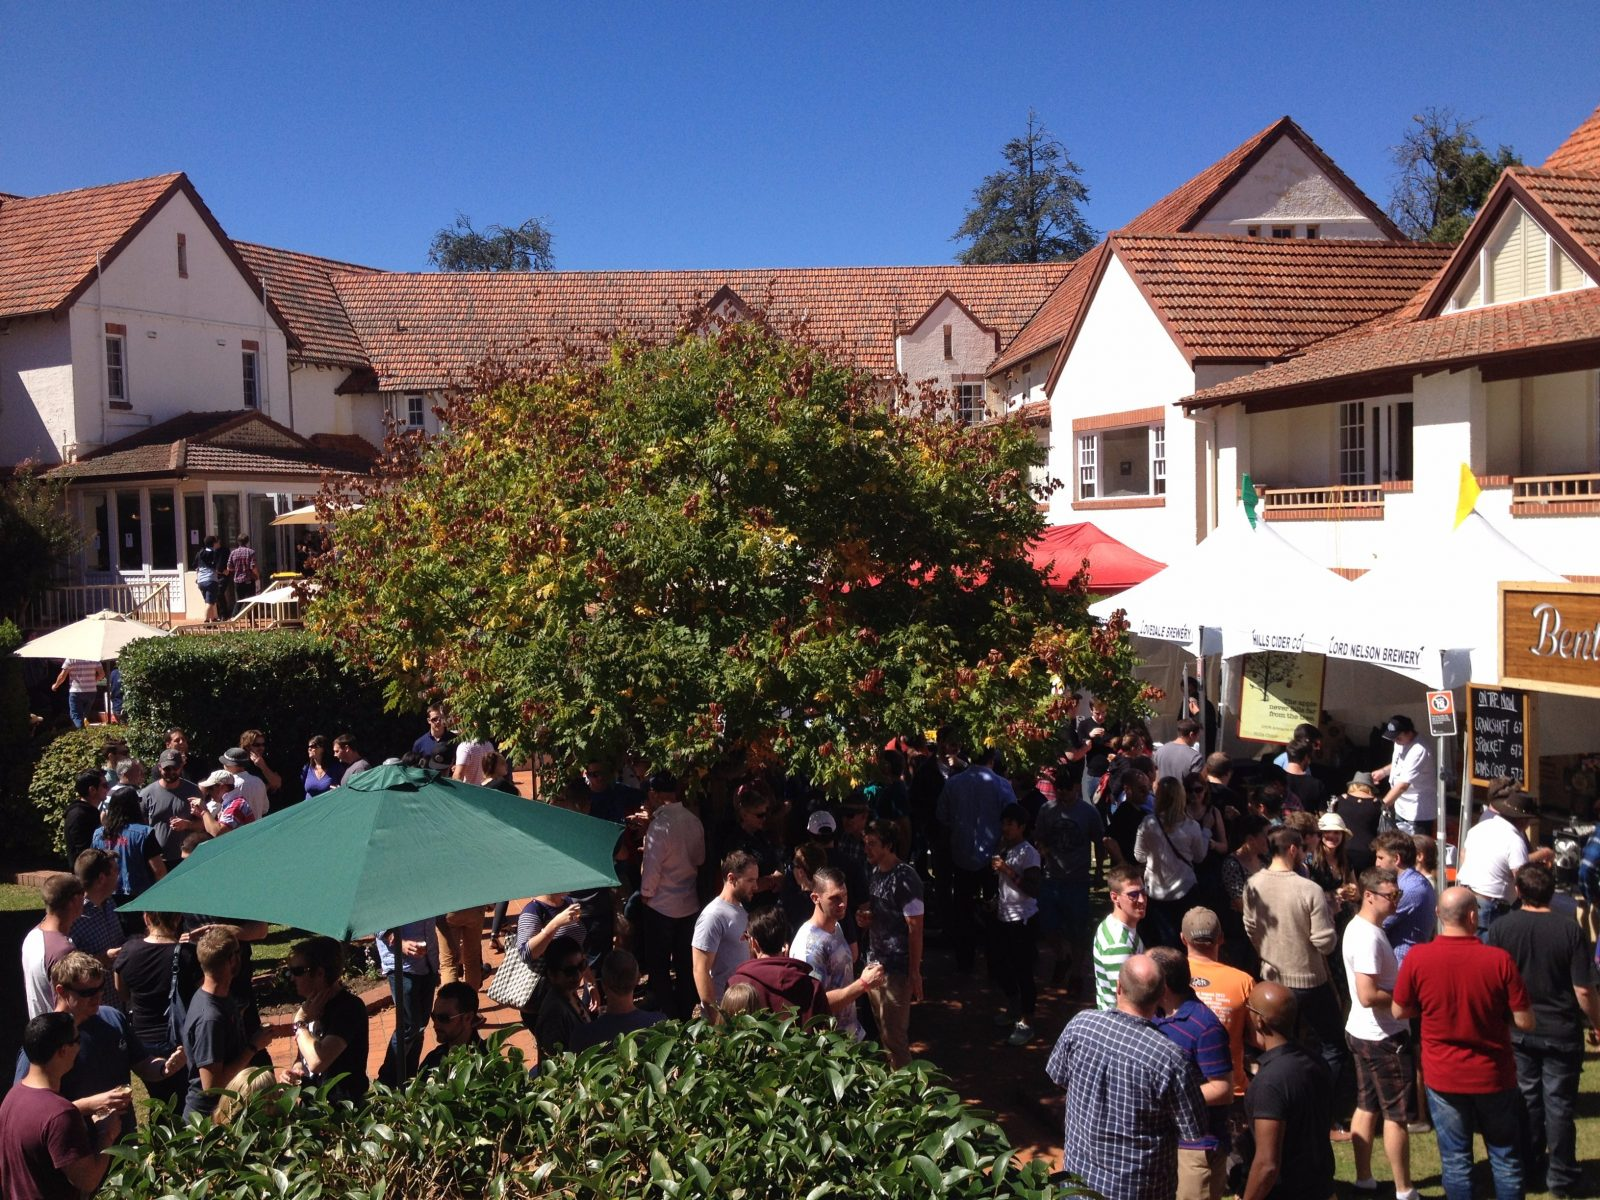 Canberra Craft Beer & Cider Festival crowds at Mercure Canberra